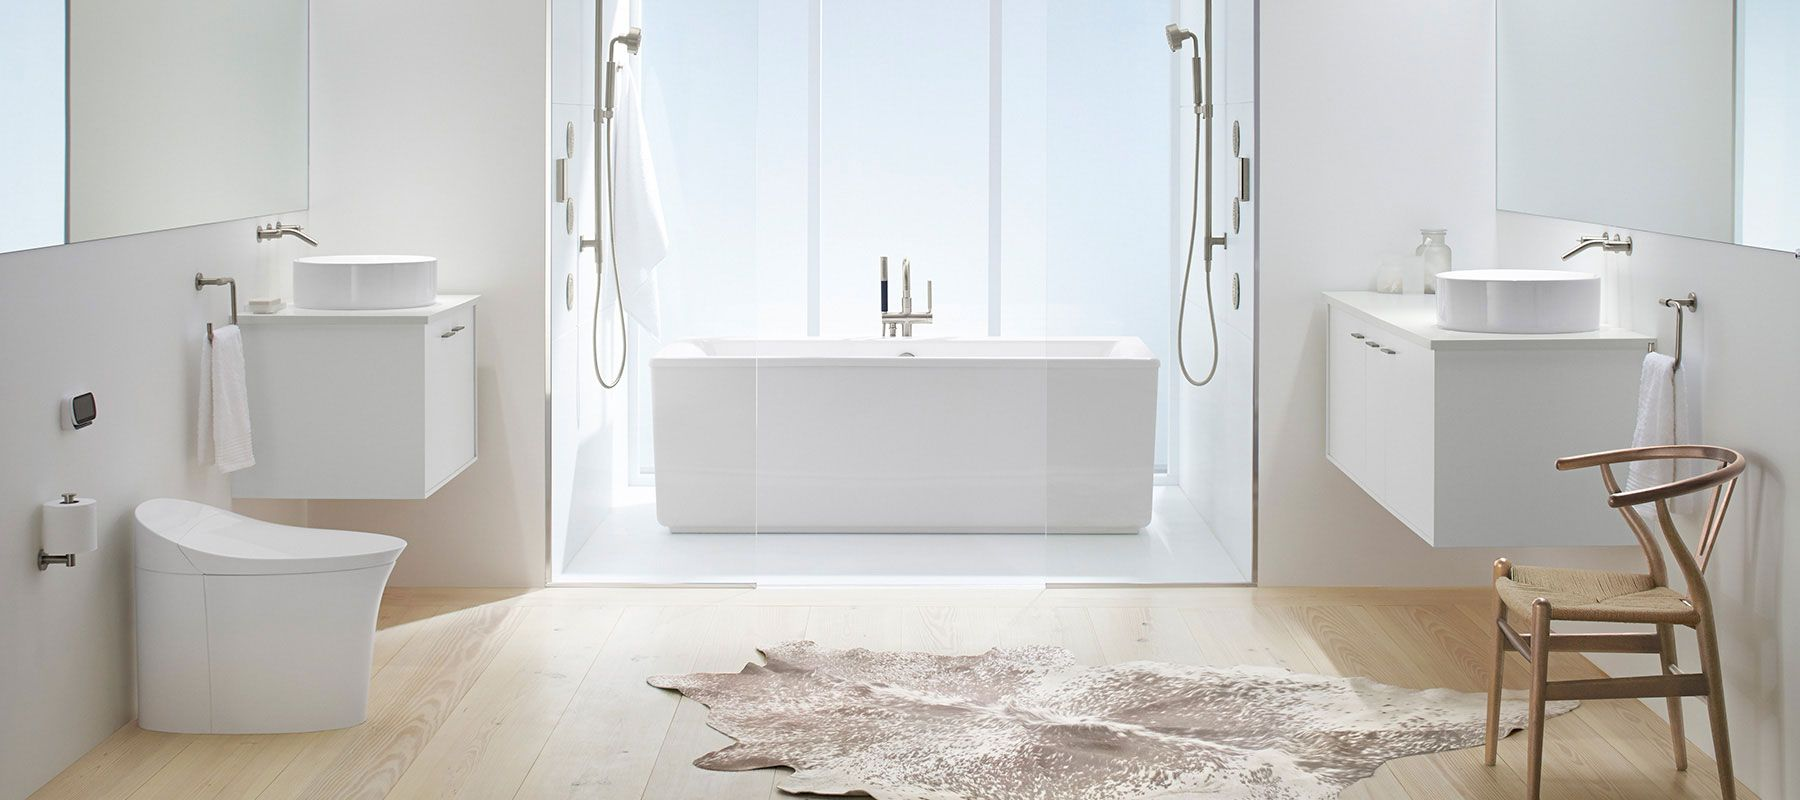 Beautiful Sinks Faucets And More Model - Faucet Products ...